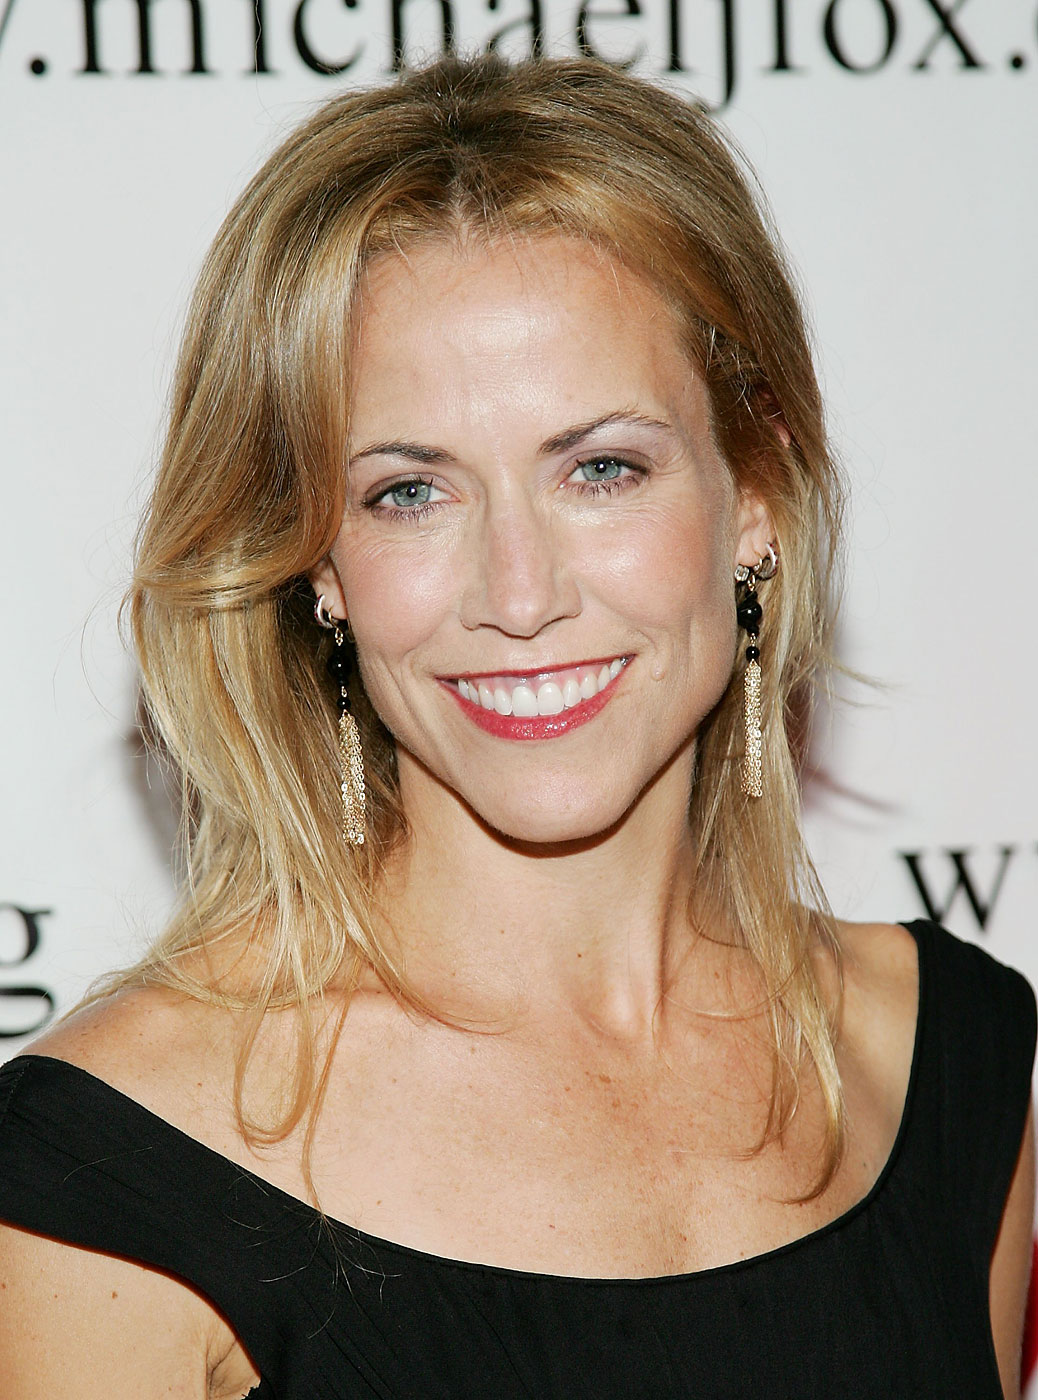 Sheryl Crow                               Musician and healthcare activist                               Diagnosed with breast cancer in 2006